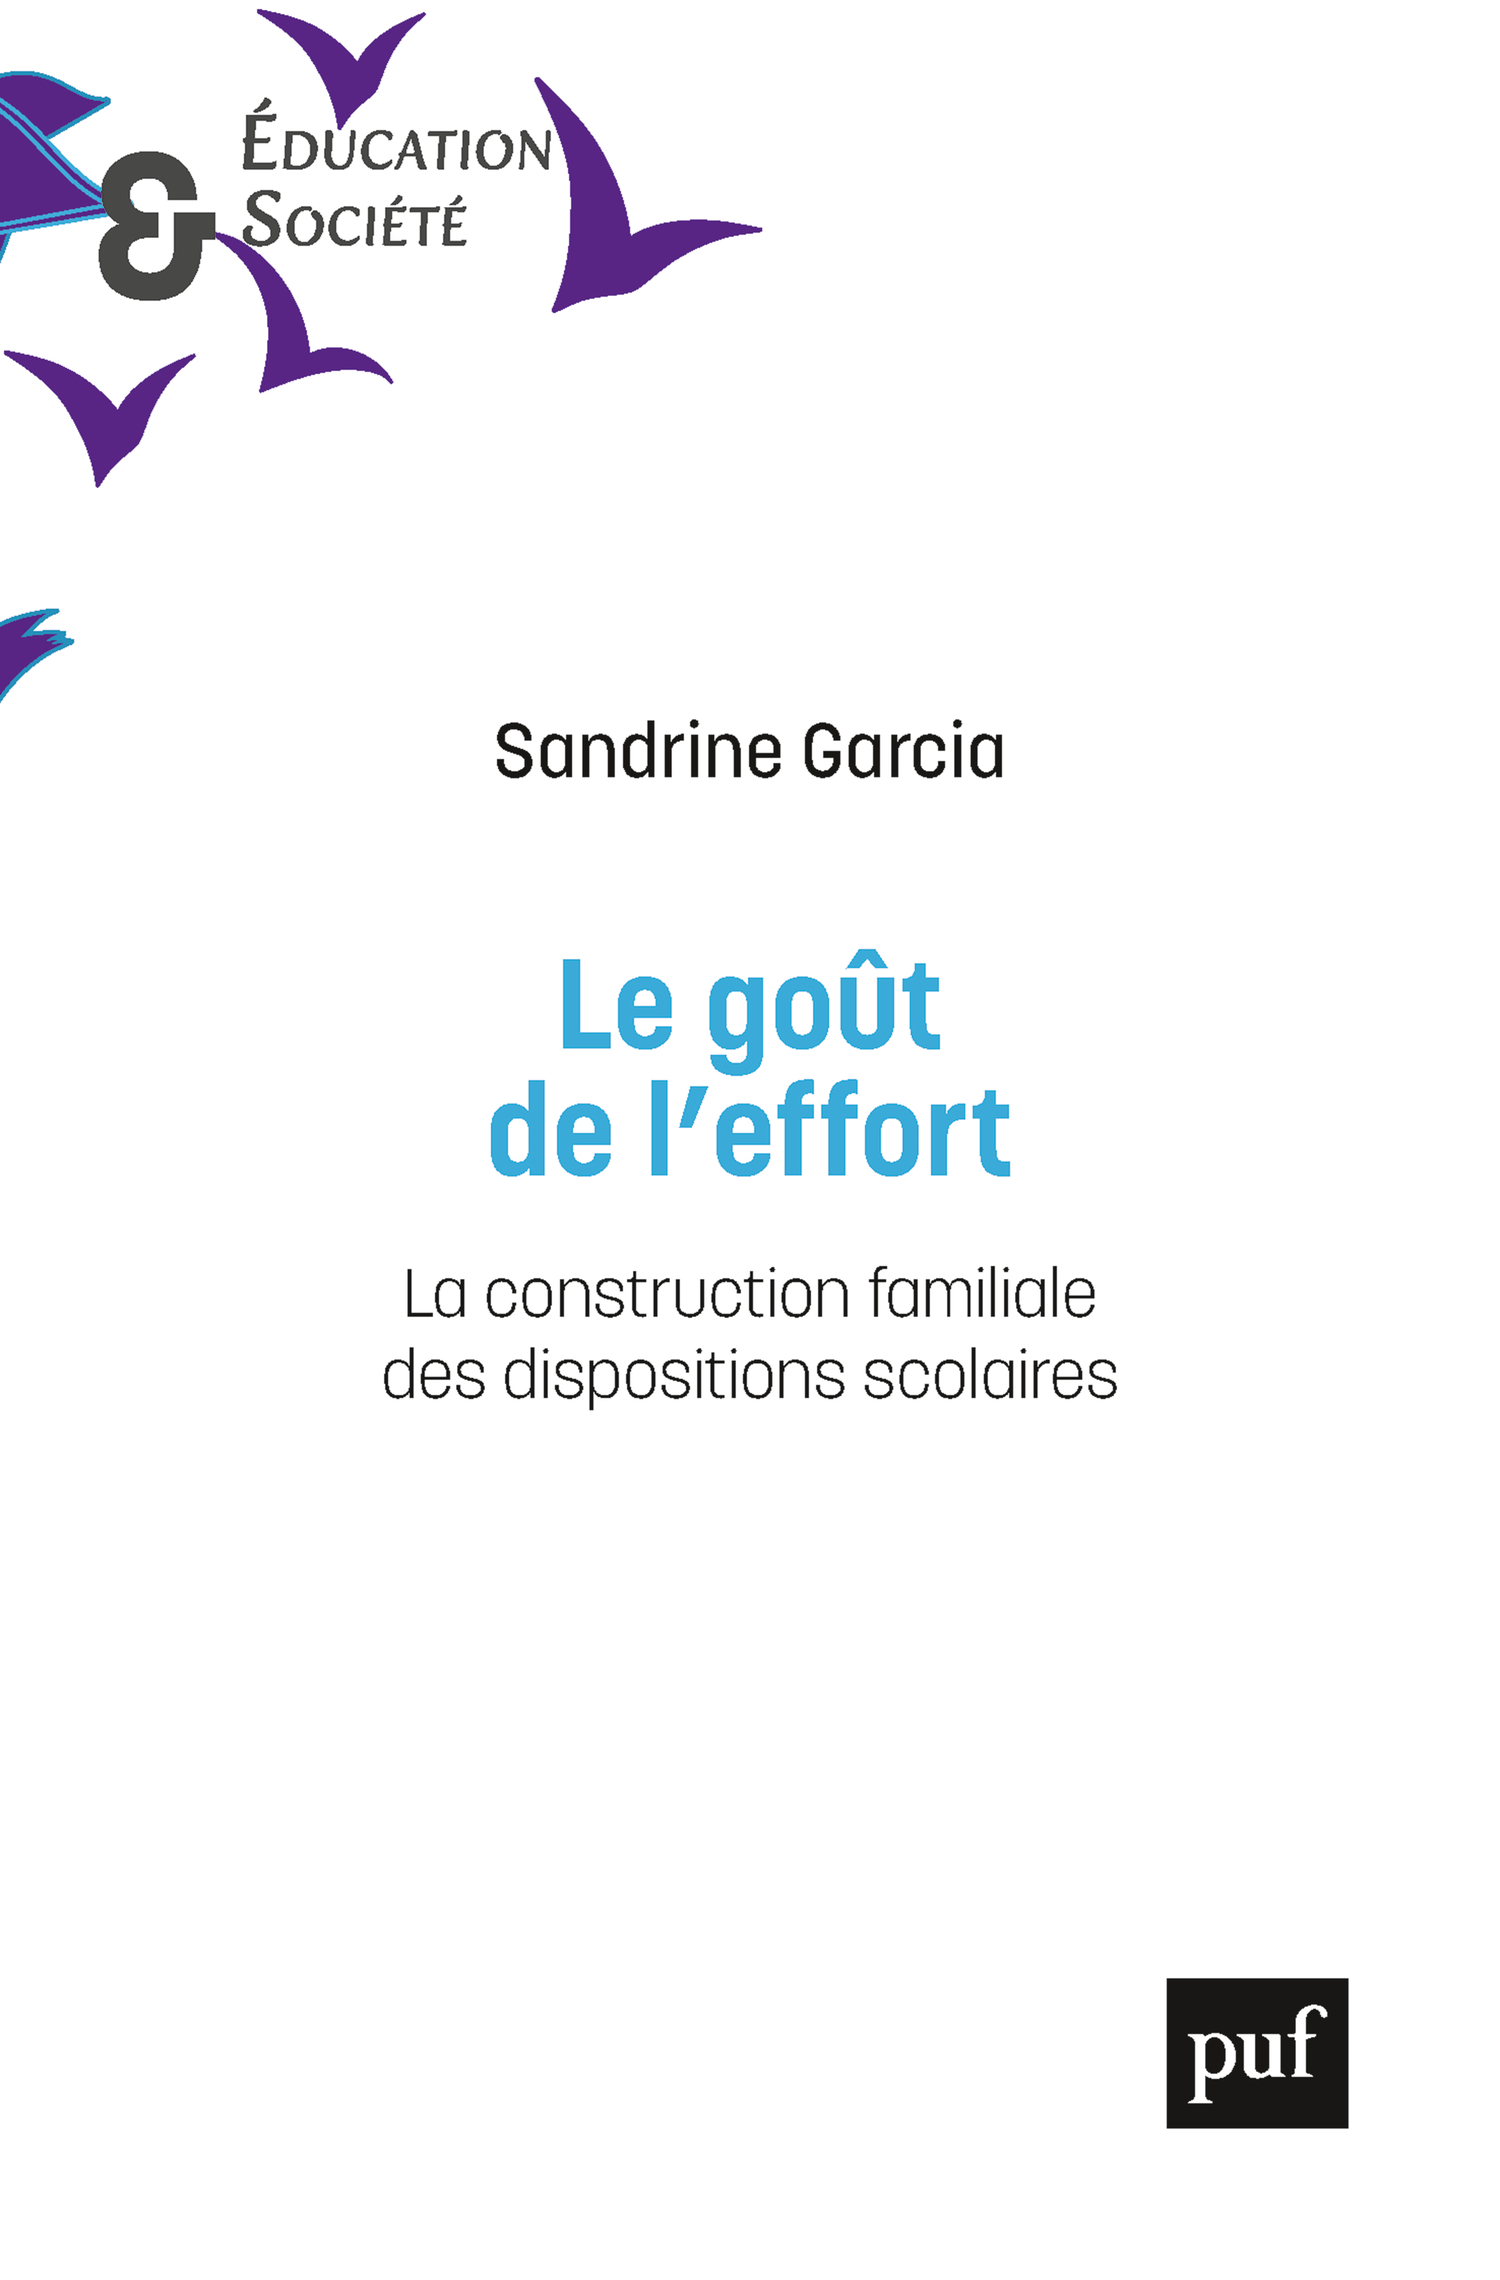 Le goût de l'effort De Sandrine Garcia - Presses Universitaires de France